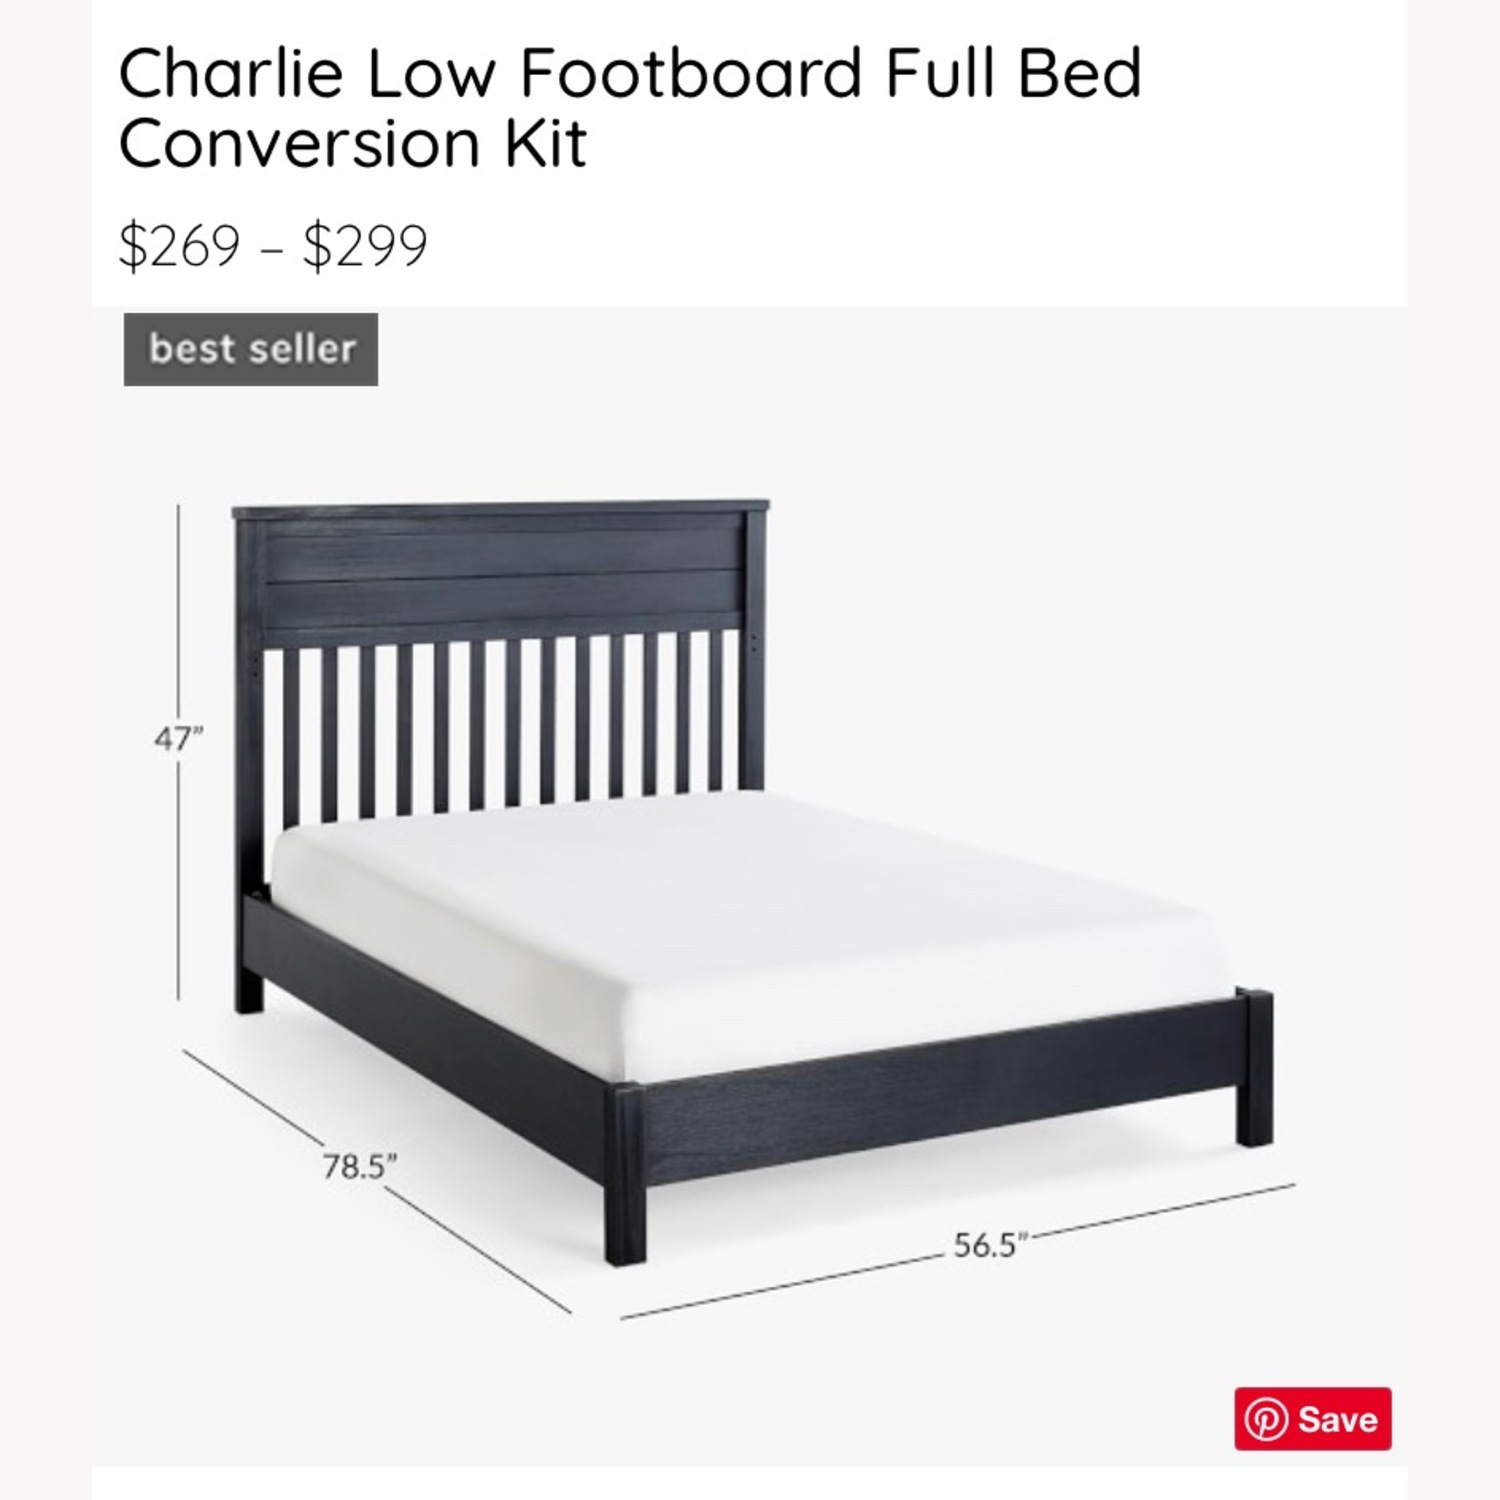 Pottery Barn Charlie Crib, Toddler Bed, Full Bed - image-5